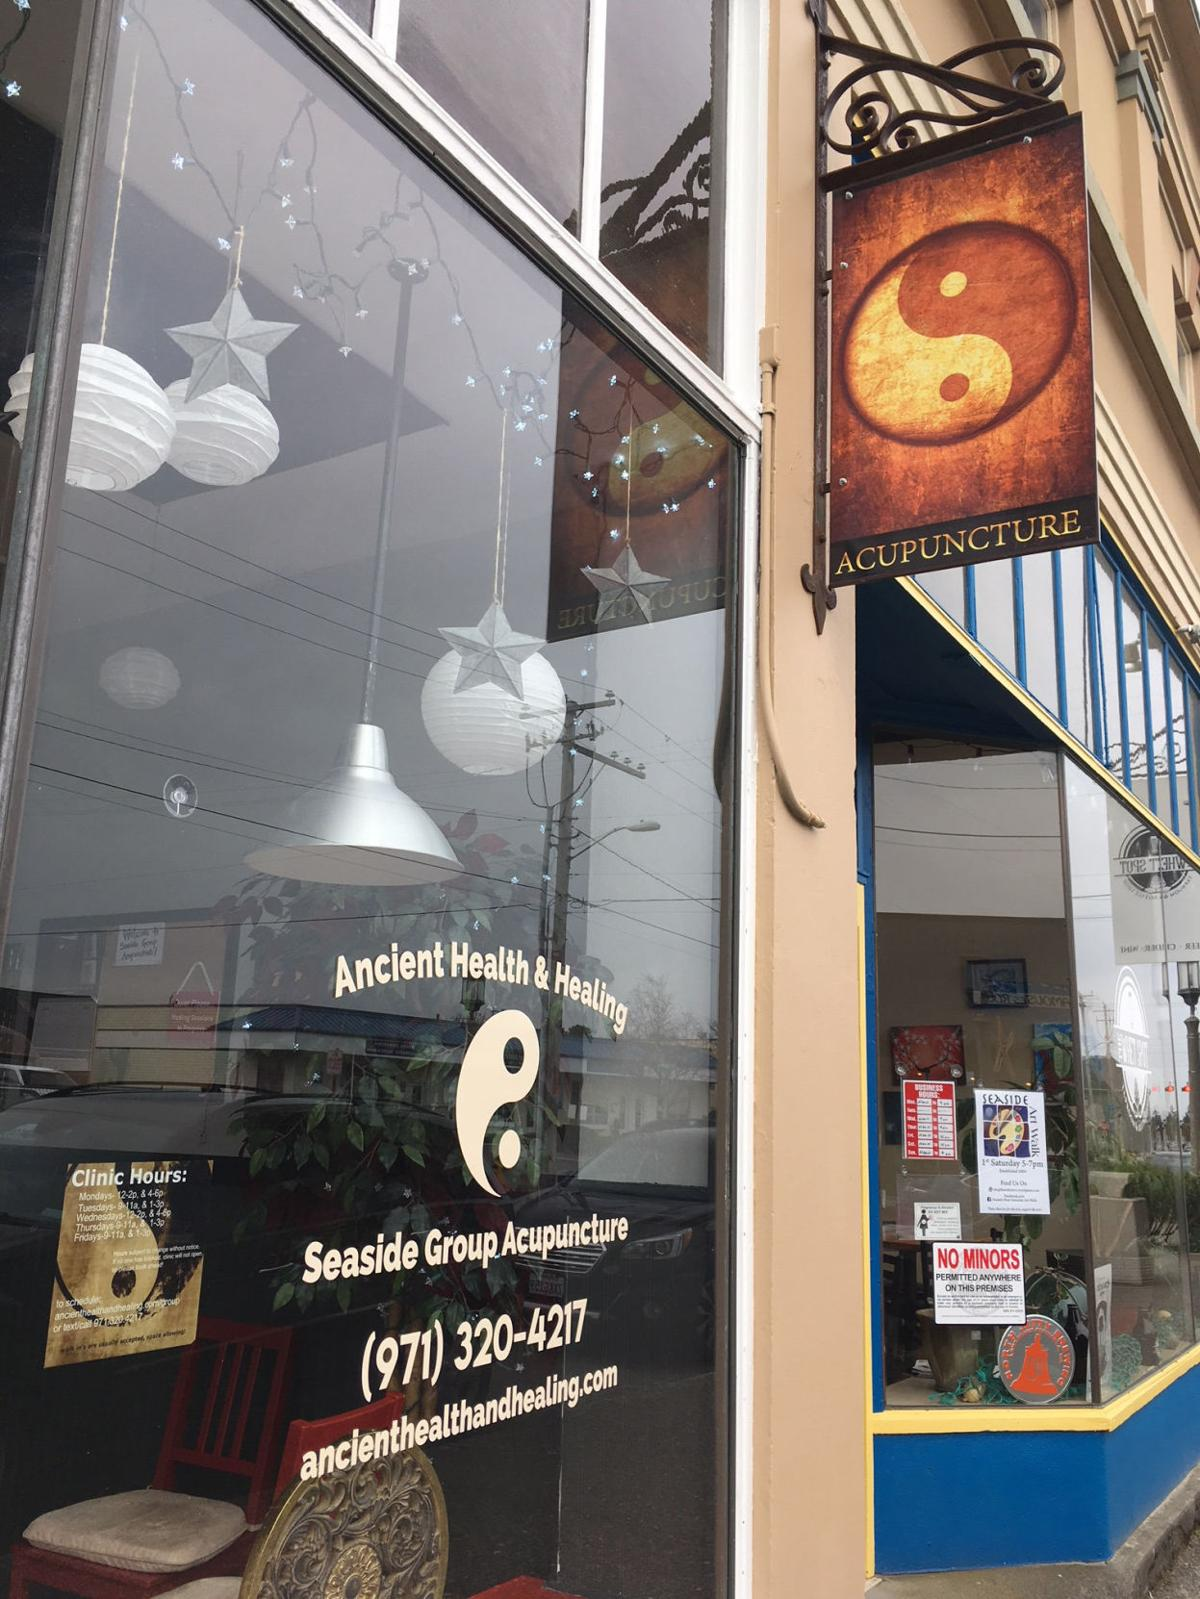 From Sedona to Seaside, acupuncturist offers services